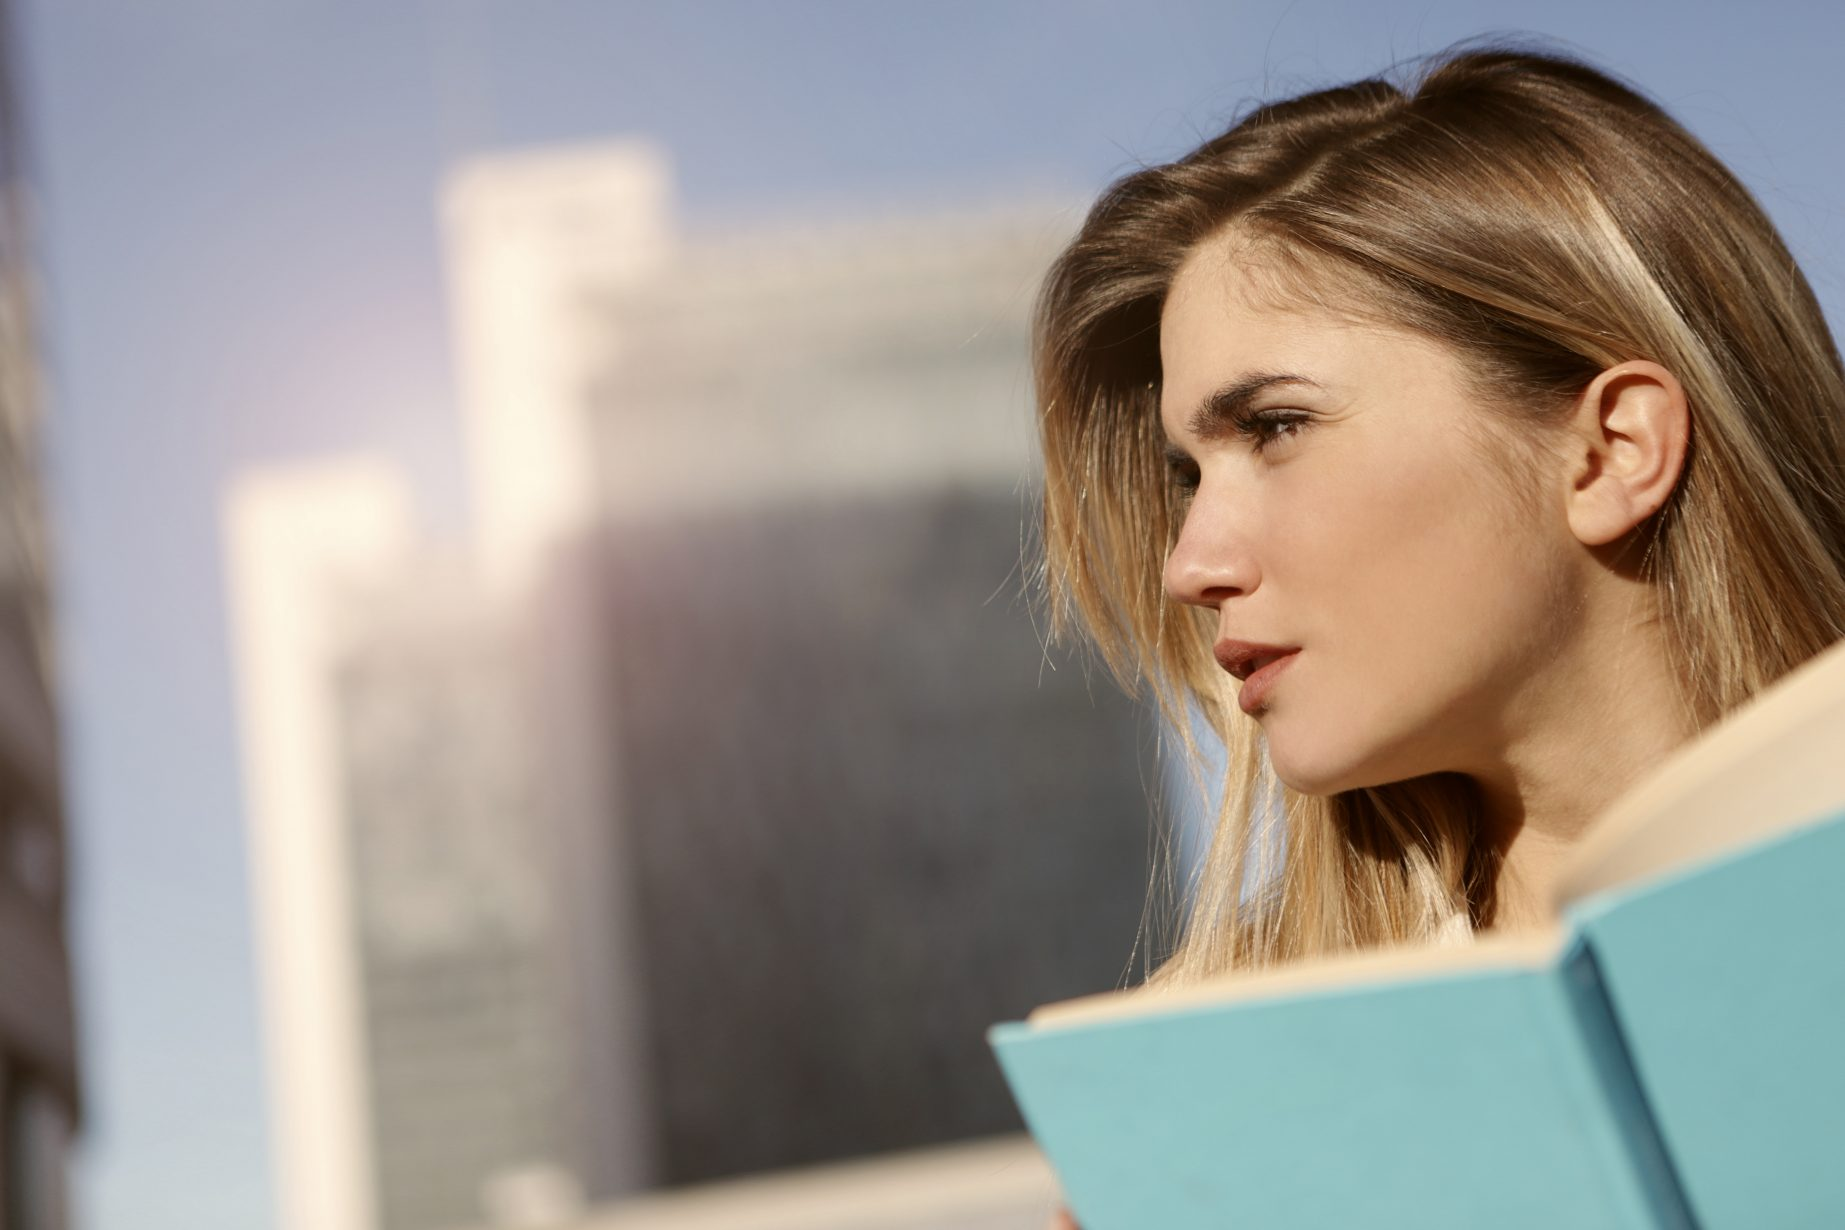 side-view-photo-of-a-woman-holding-blue-book-3781537